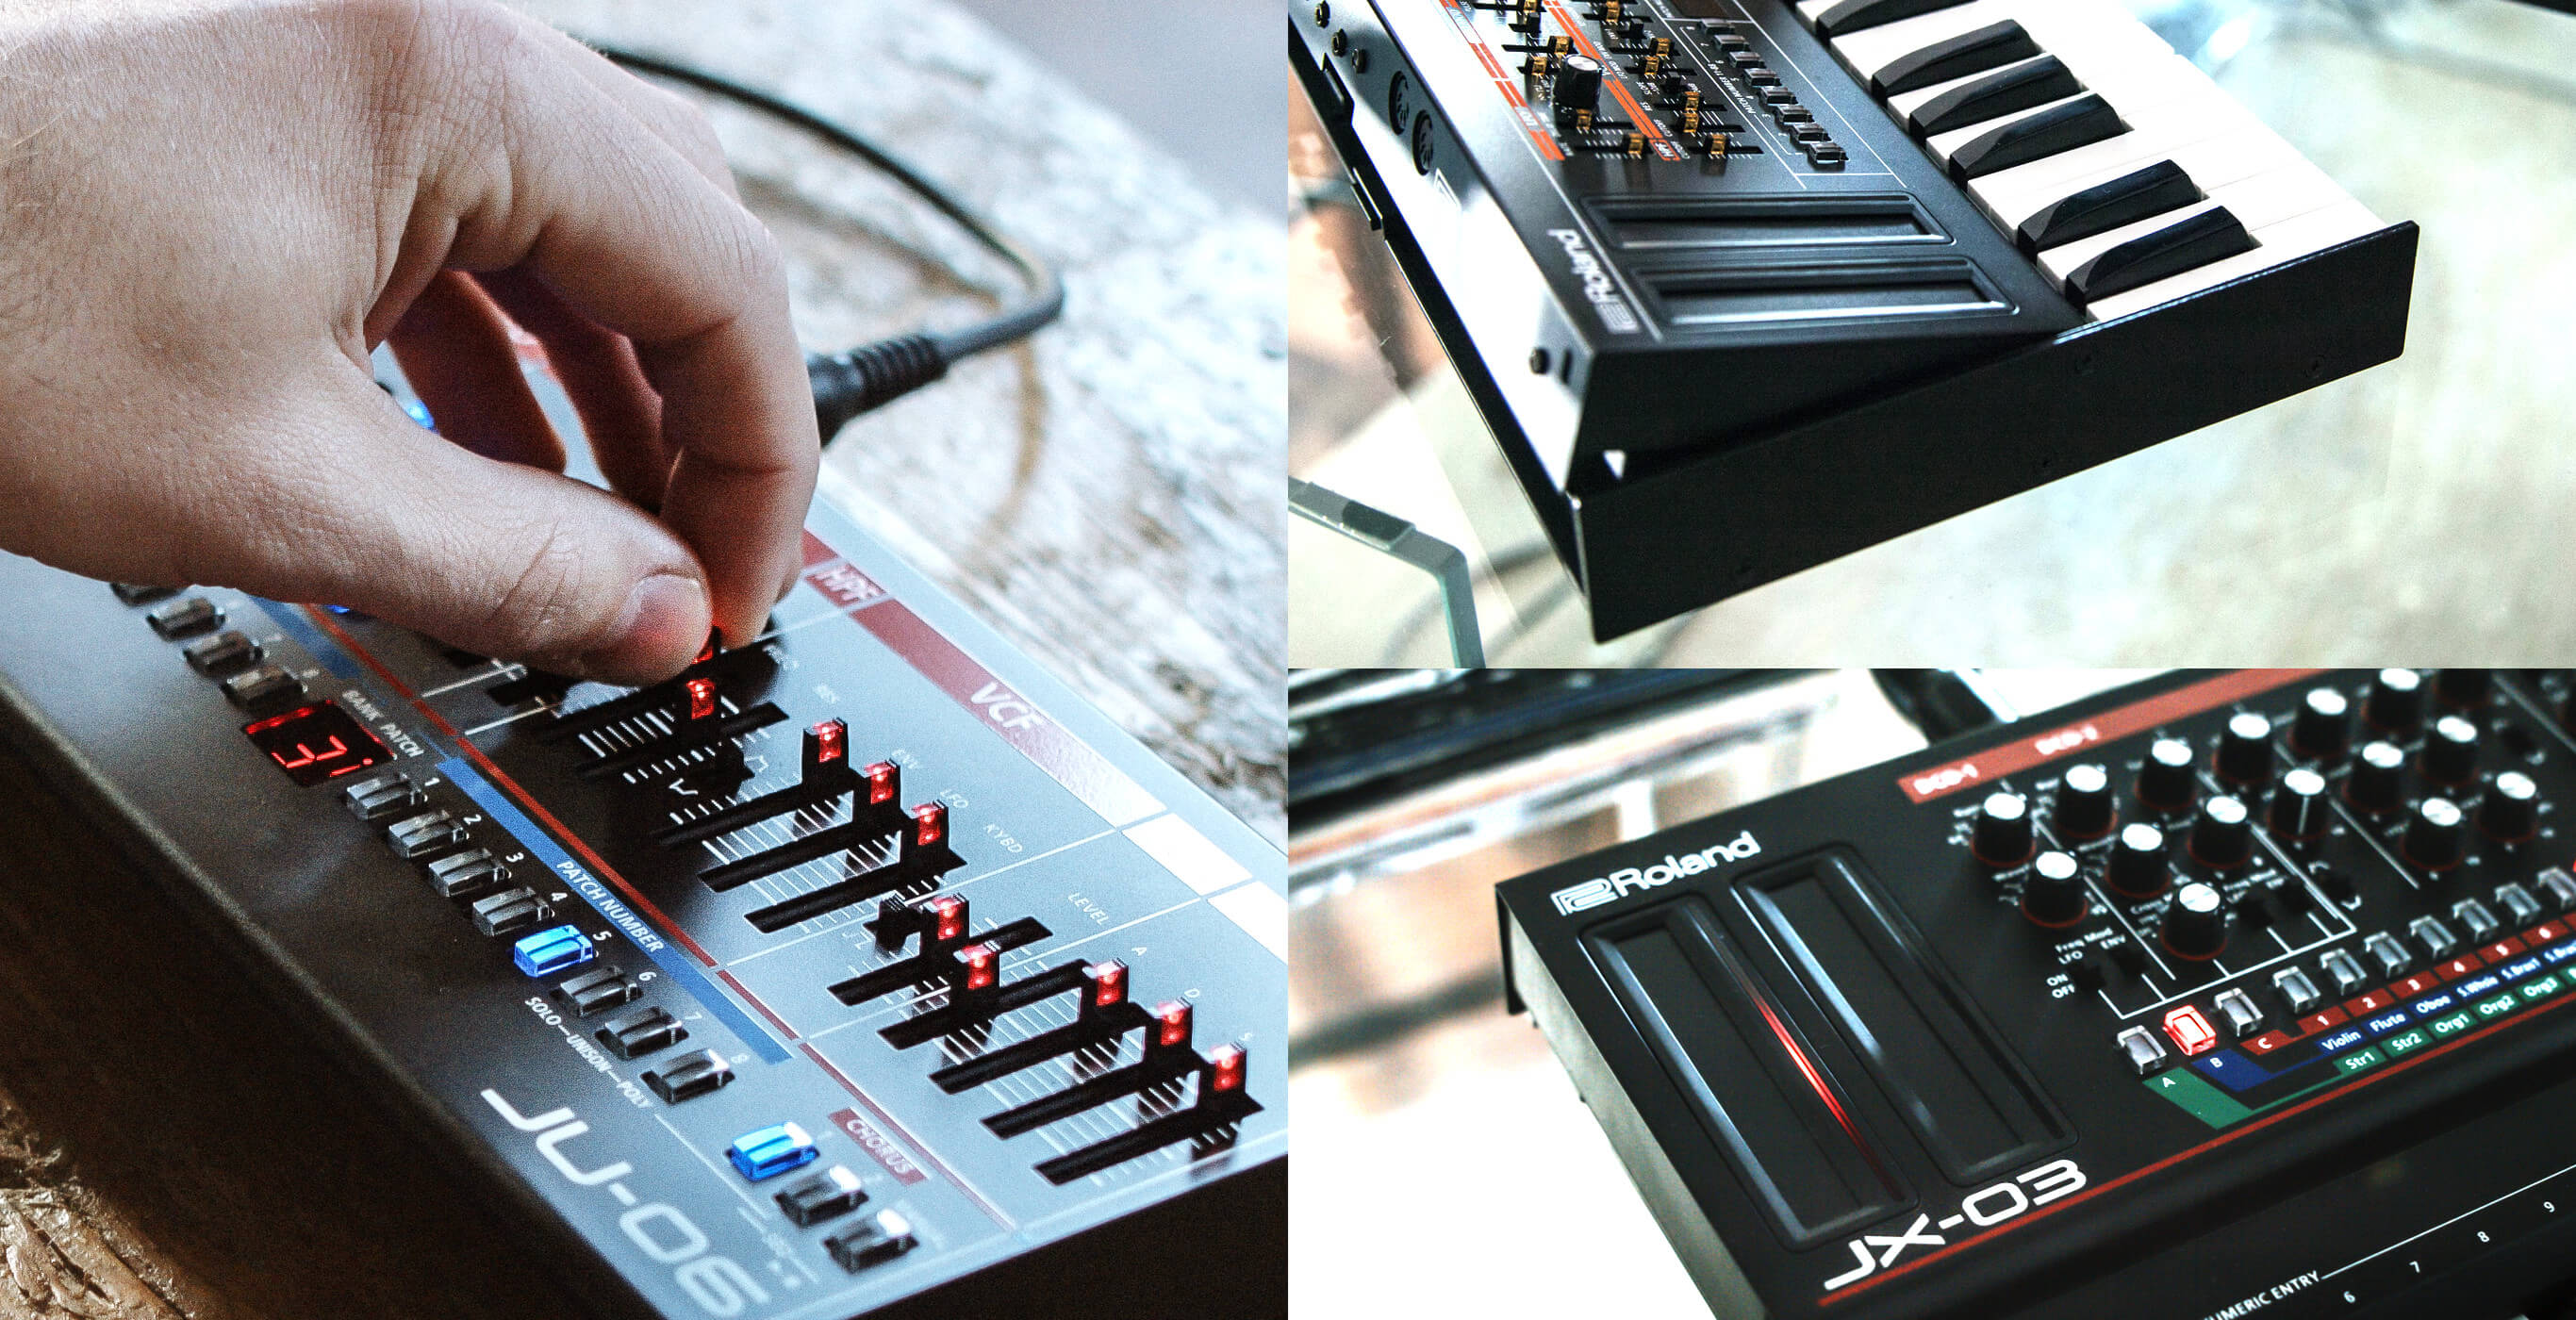 The Roland Boutique range is a series of limited-edition modules that faithfully recreates some of Roland's most legendary synths.